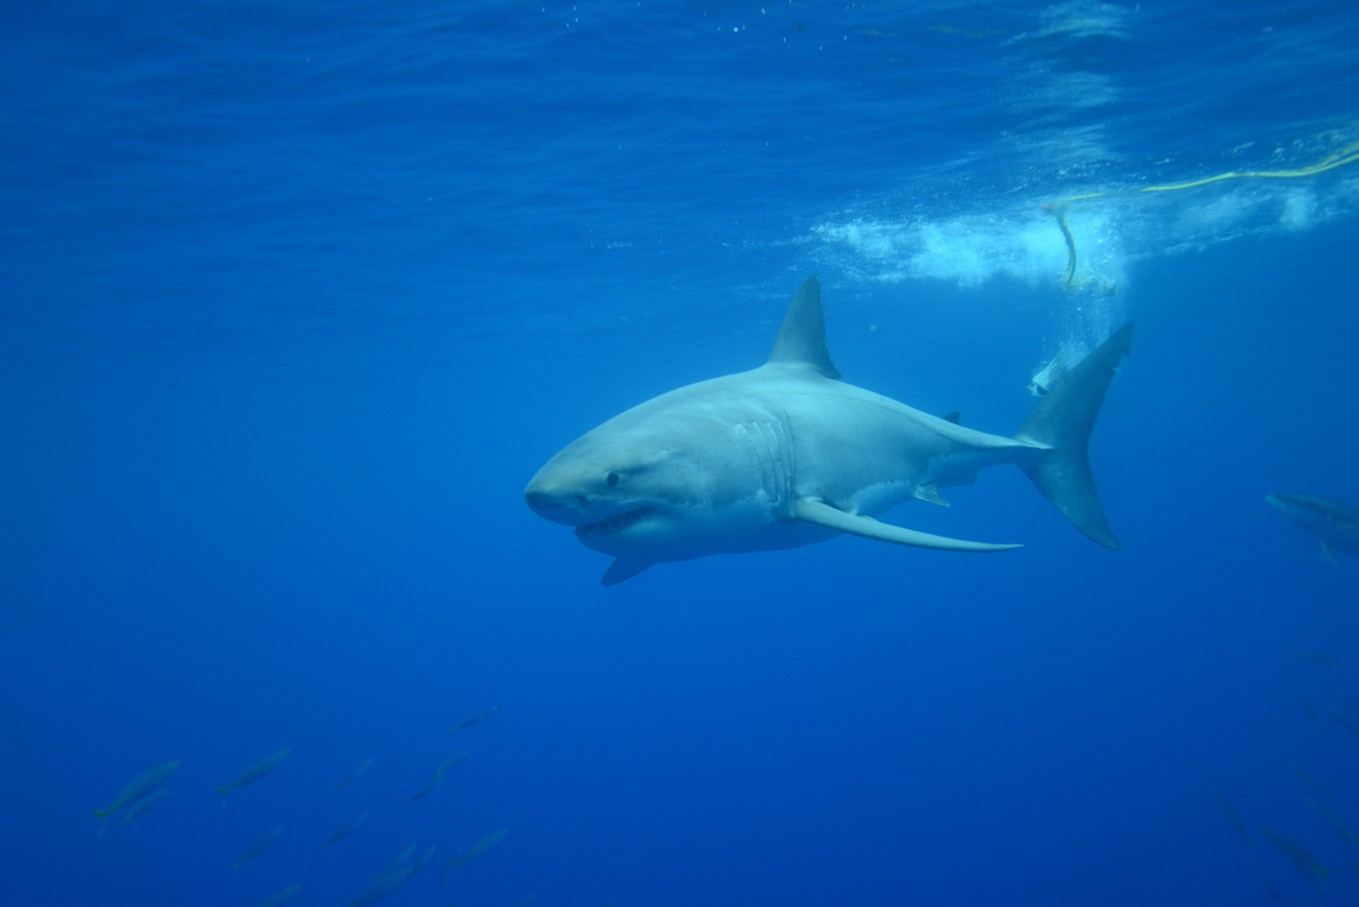 The sharks are spectacular!